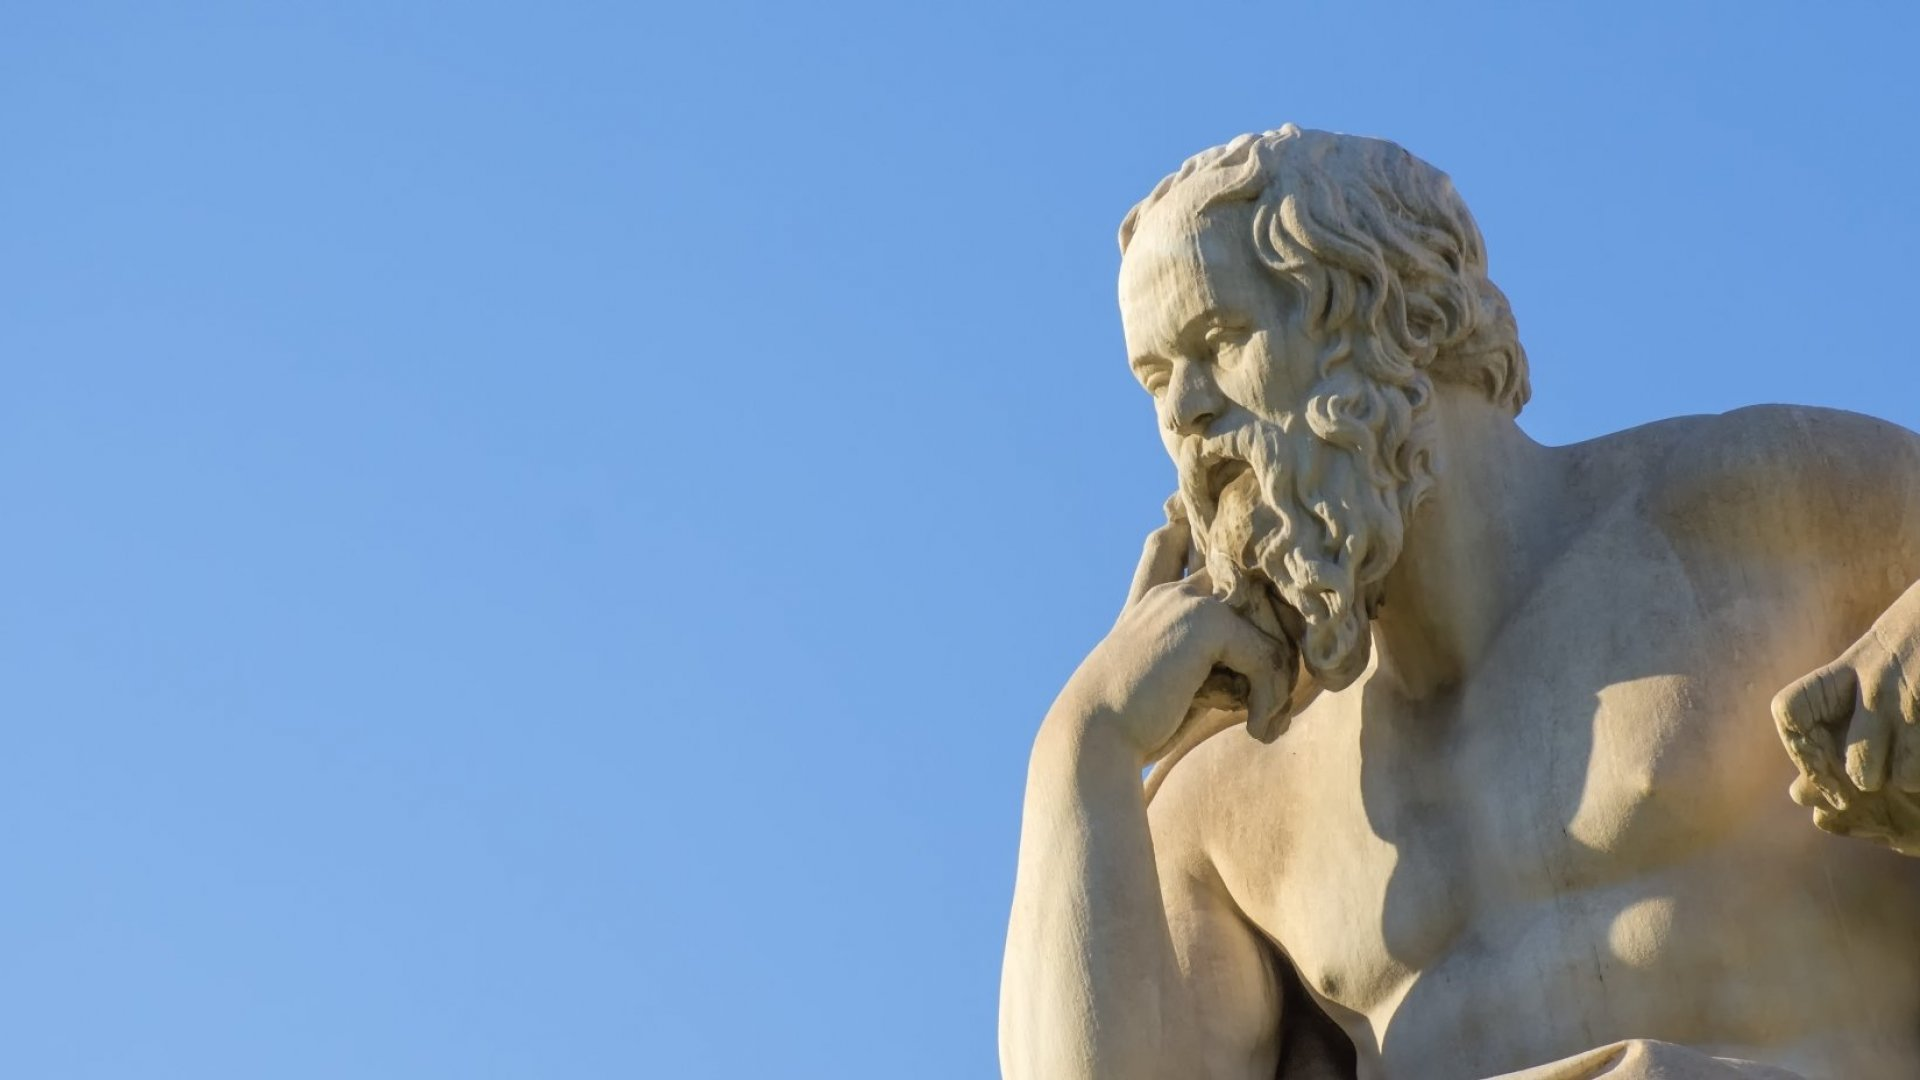 Want To Live a Better Life? Use These 8 Life Lessons To Build Your Personal Philosophy